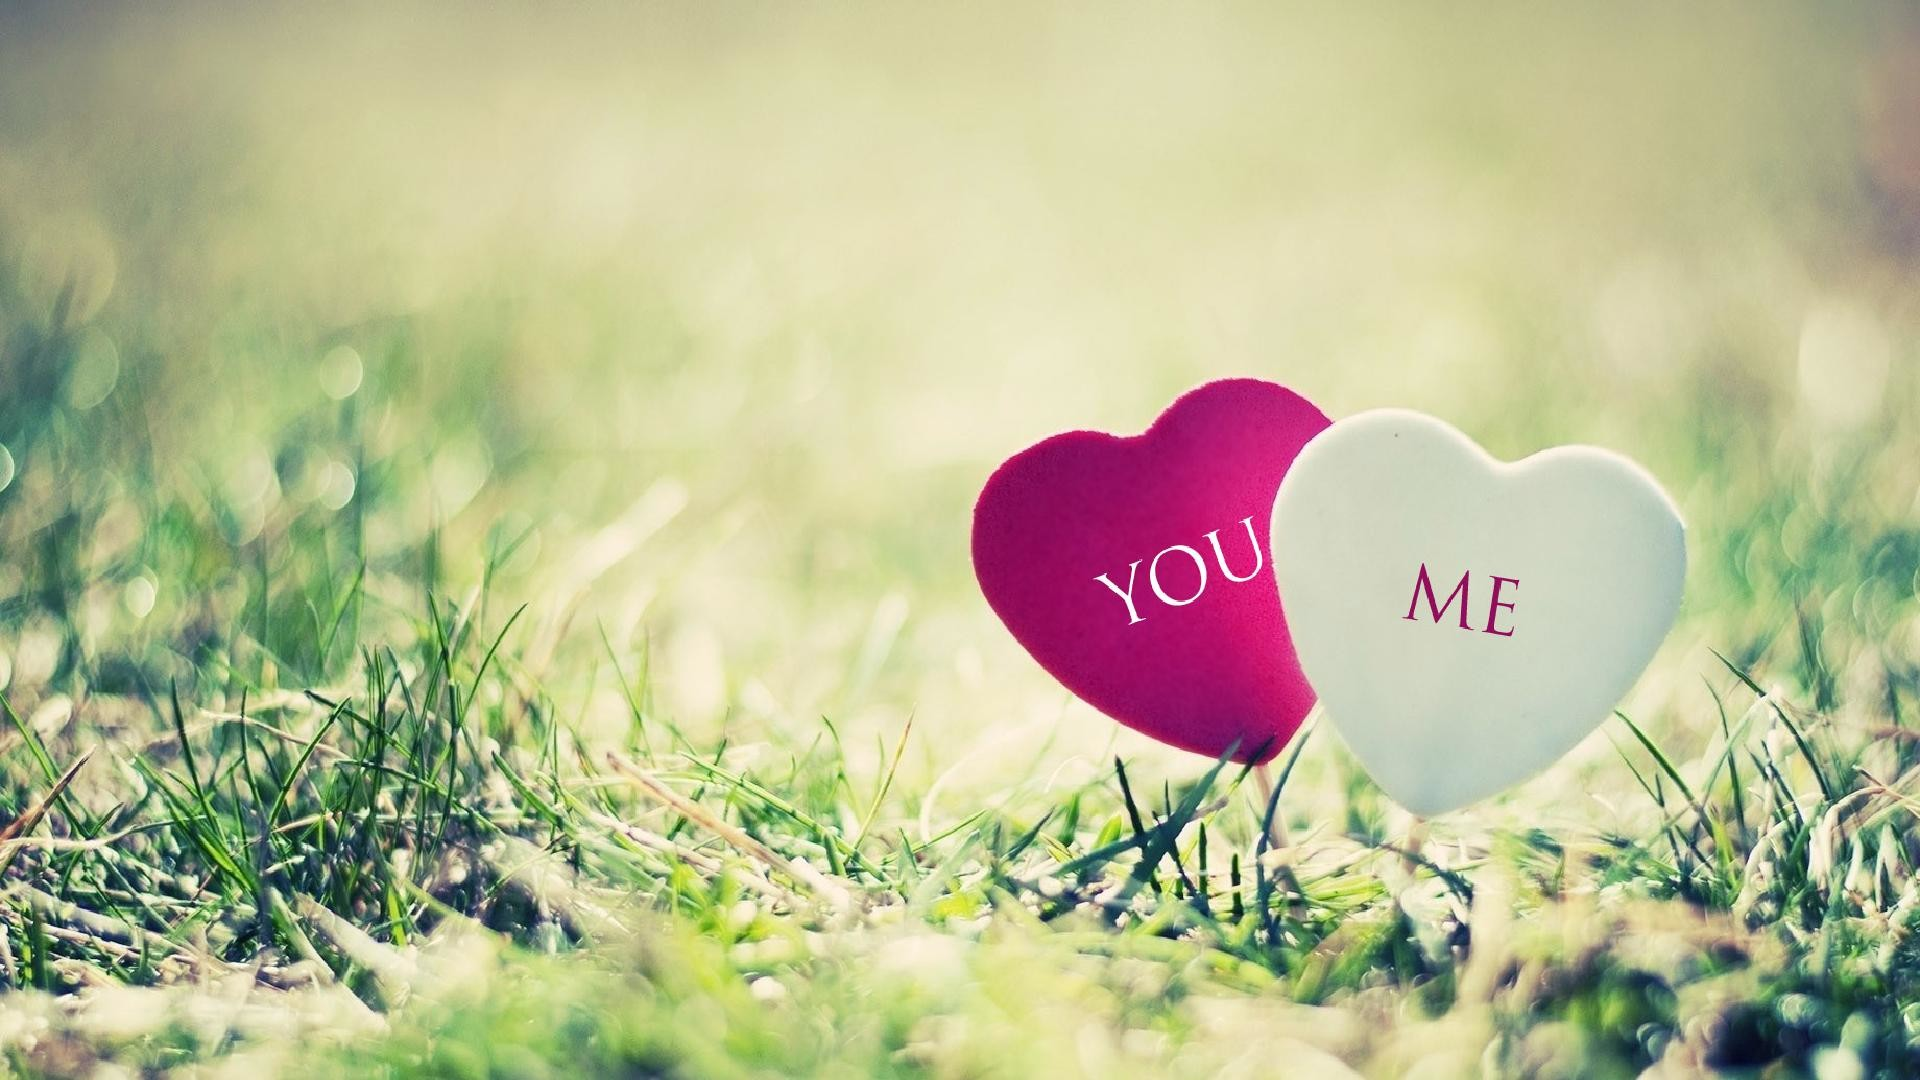 You and me cute hearts